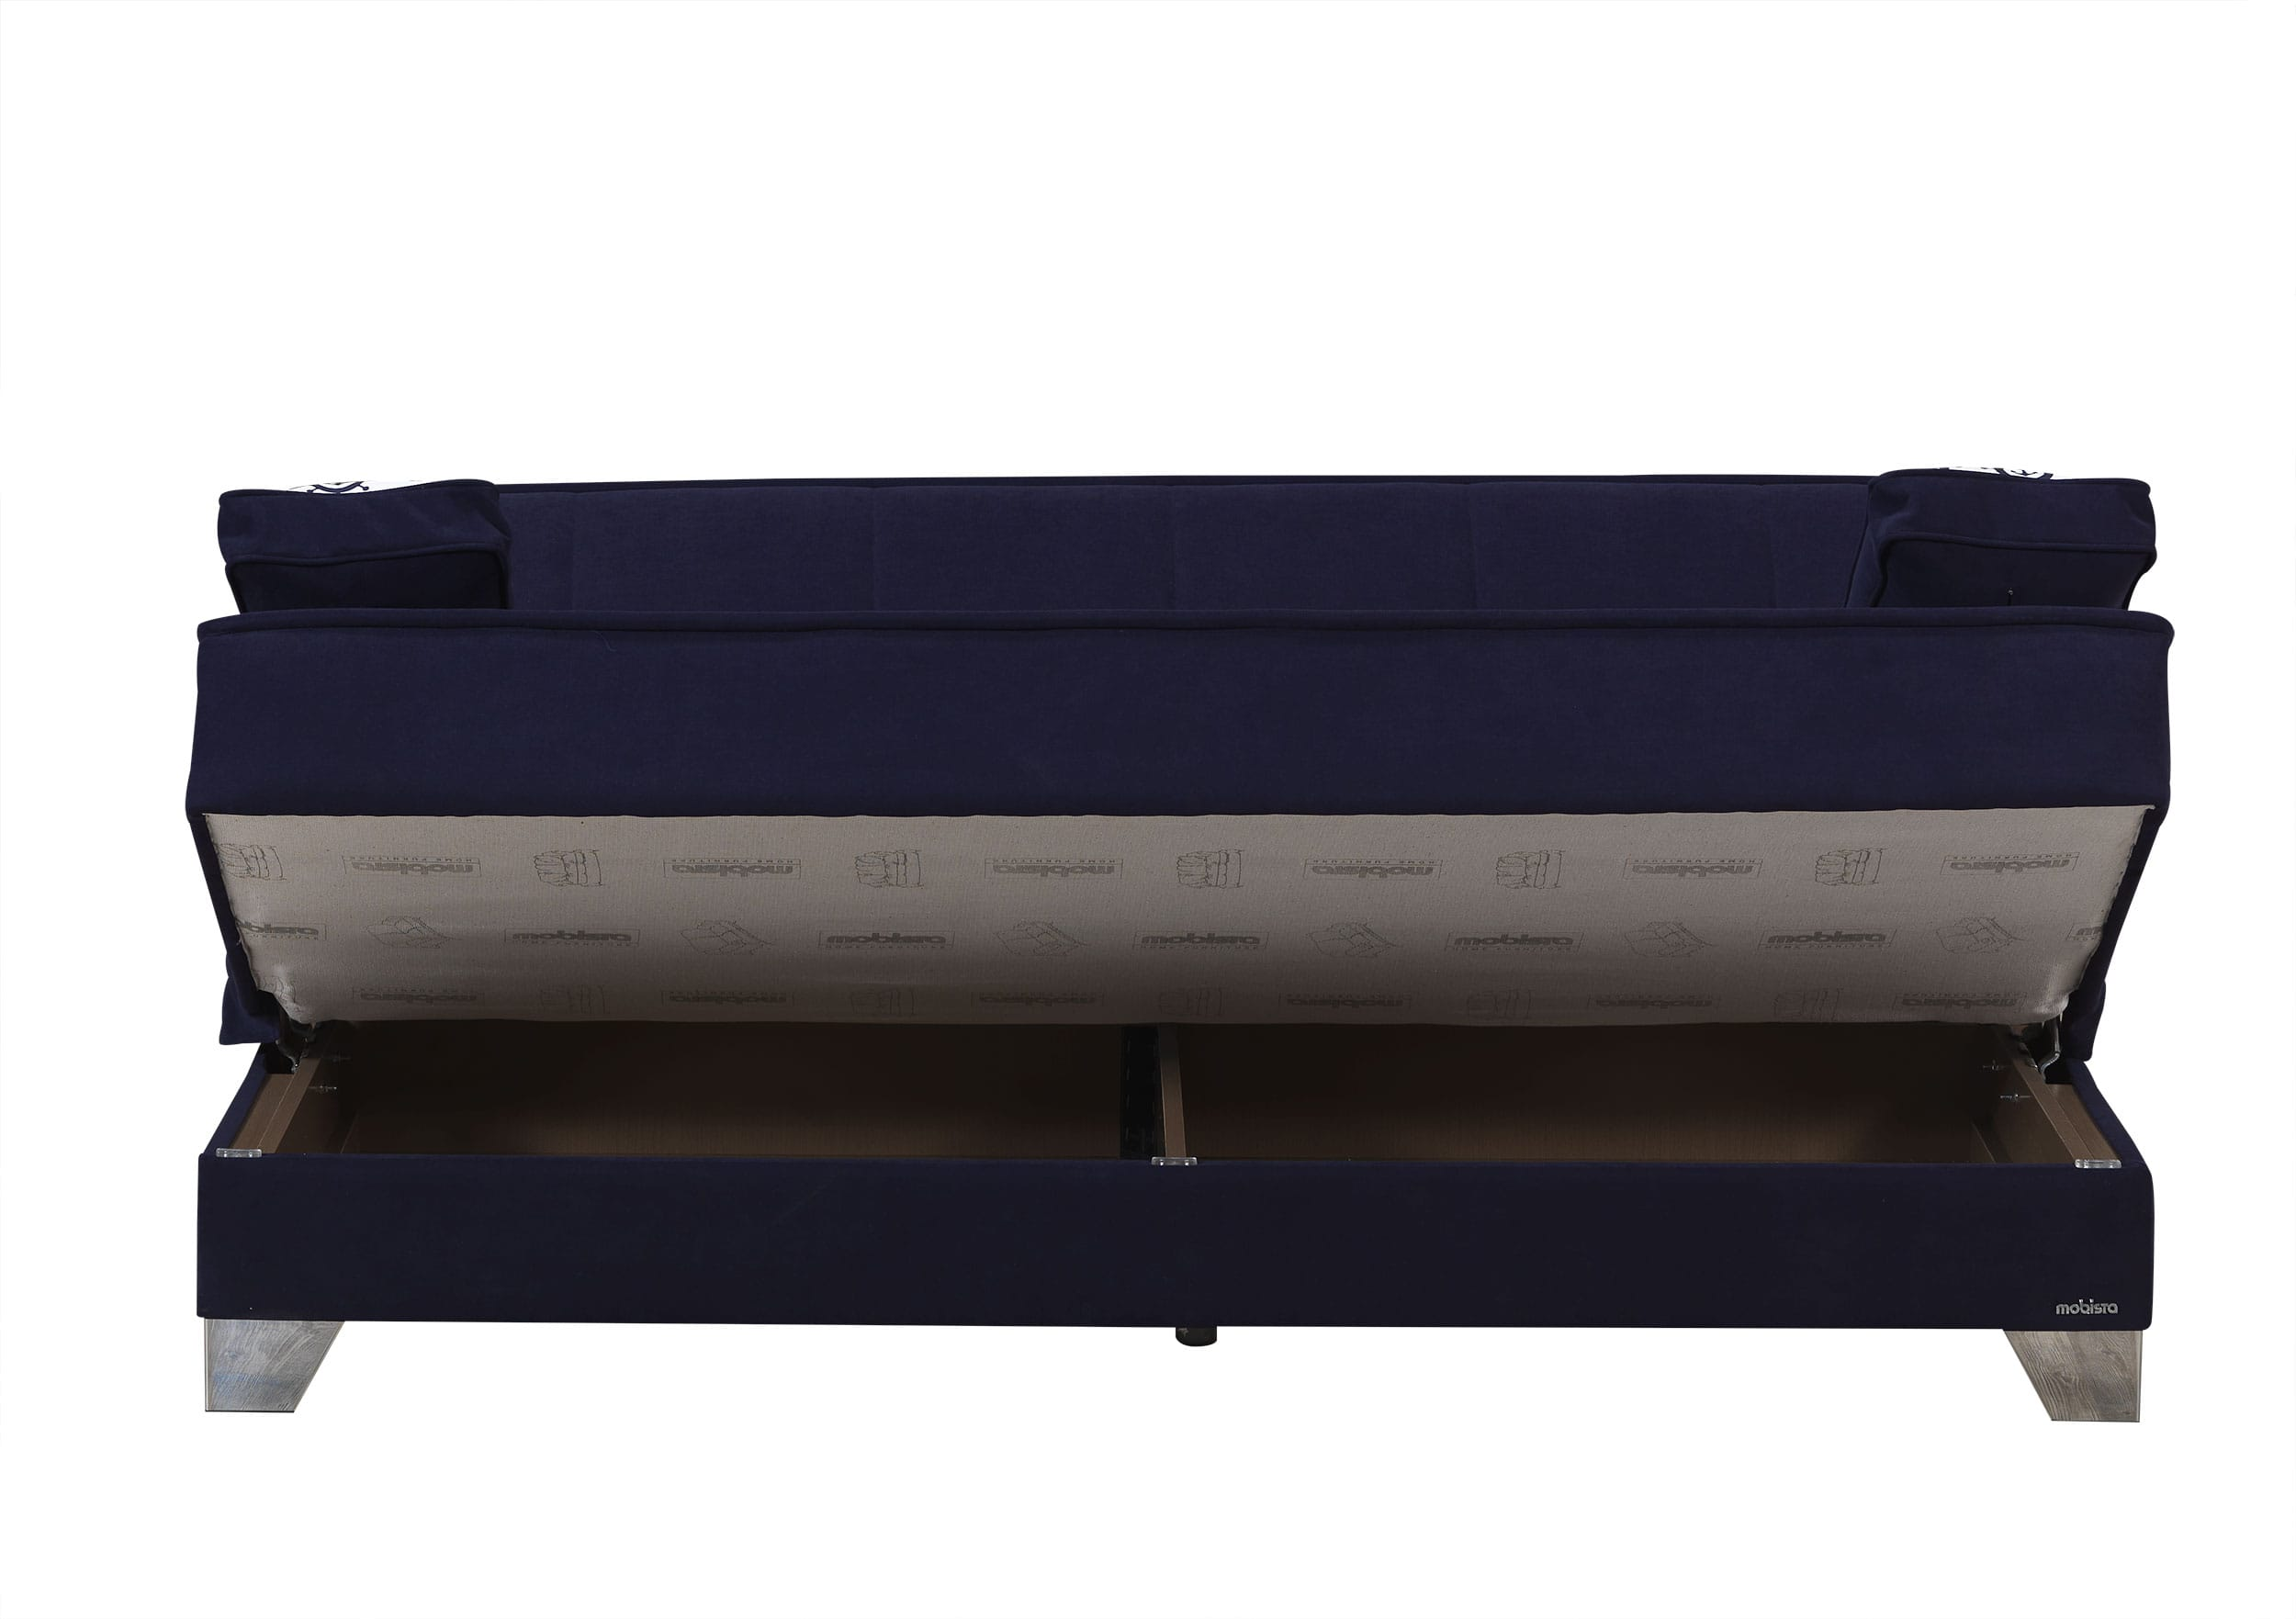 Nexo Carisma Navy Blue Sofa Bed By Mobista